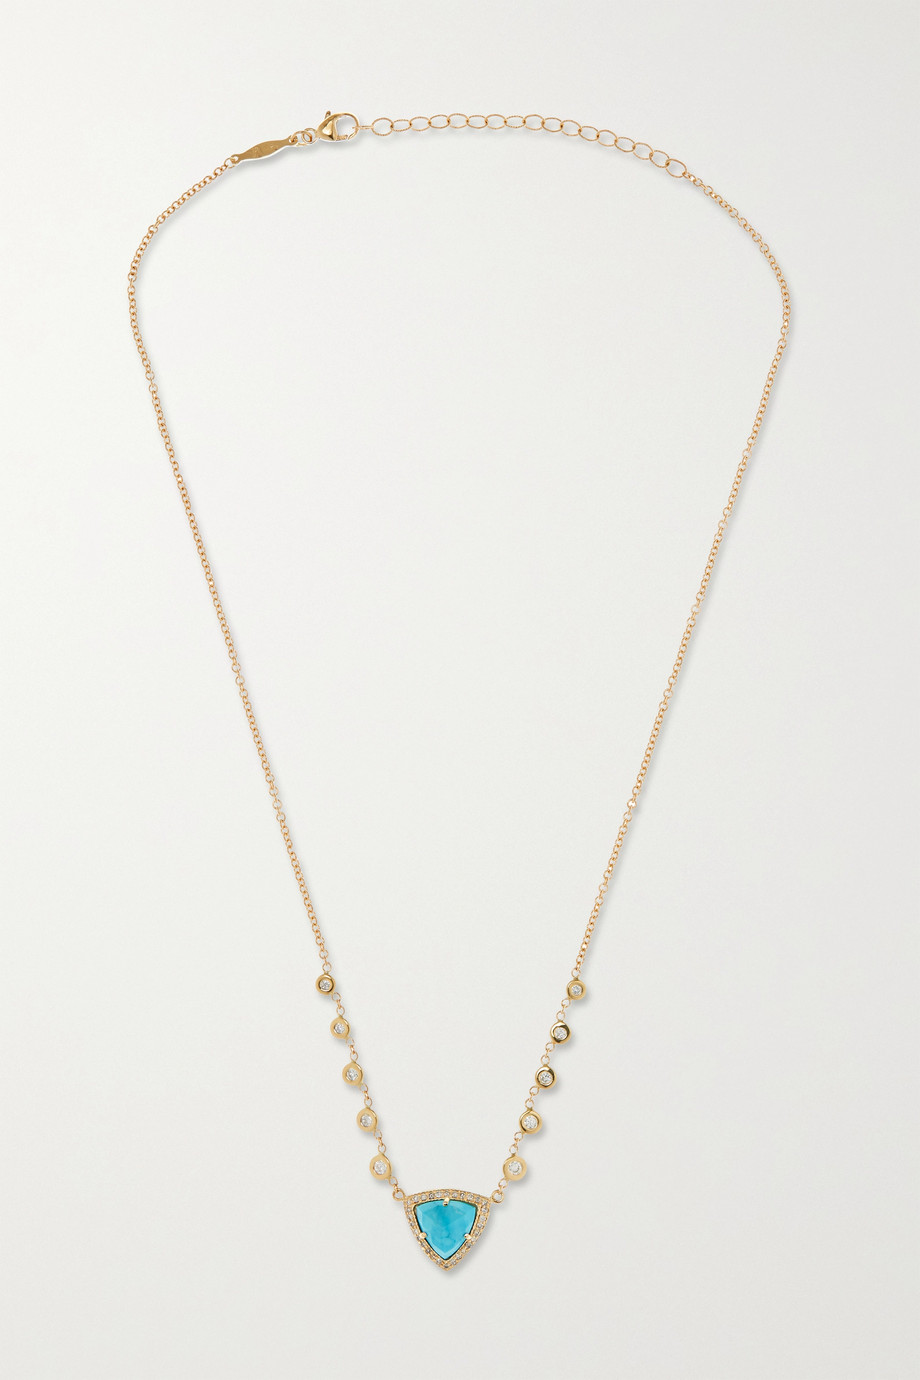 Jacquie Aiche Emily 14-karat gold, turquoise and diamond necklace